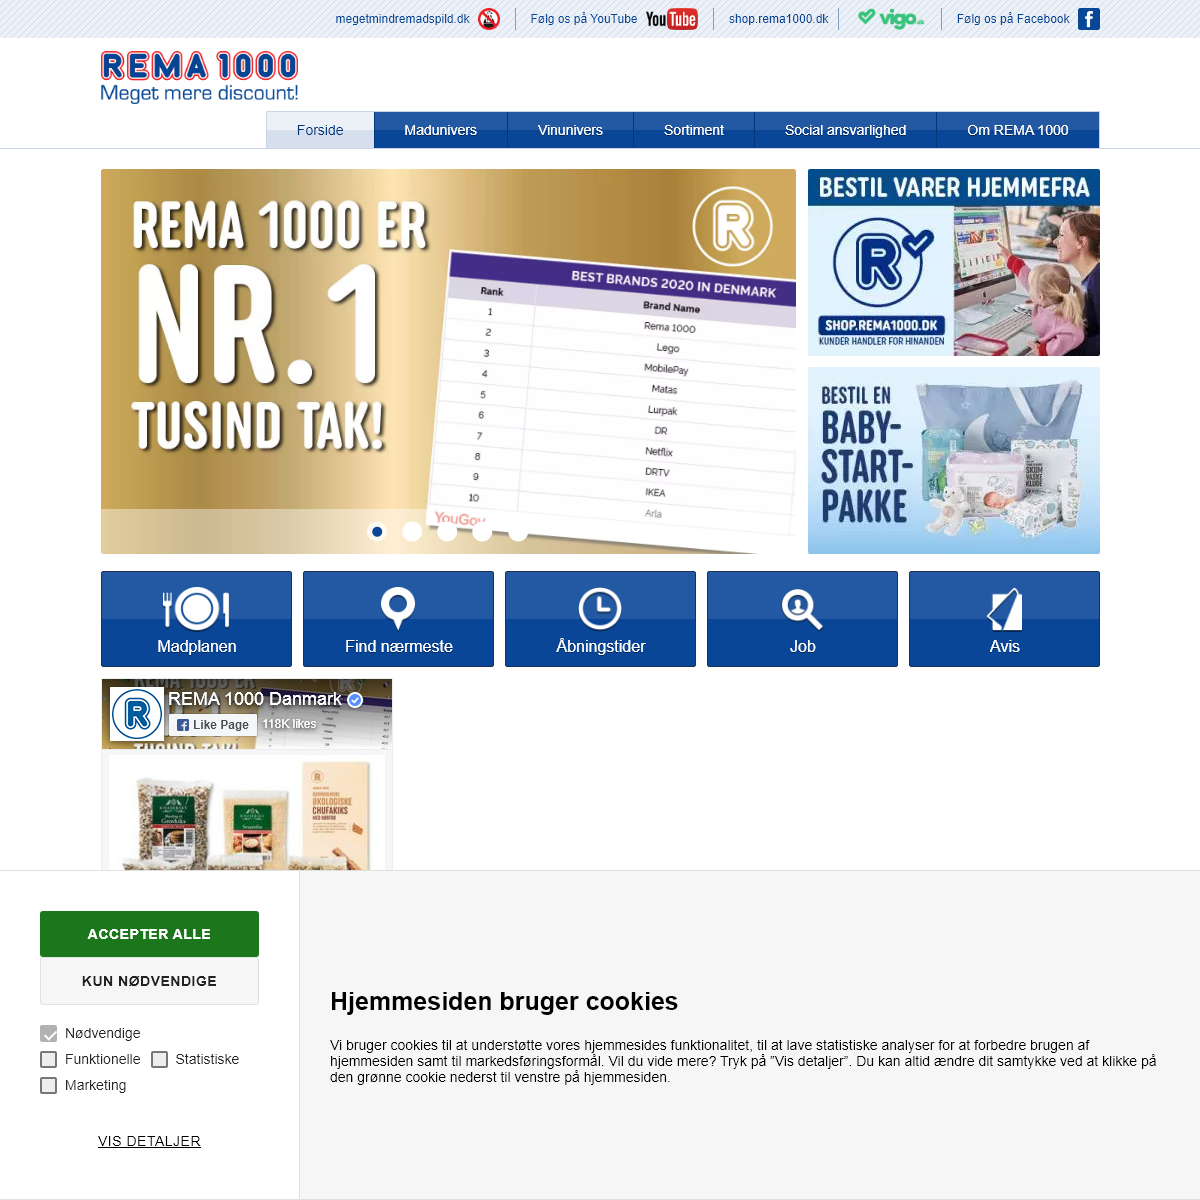 A complete backup of rema1000.dk